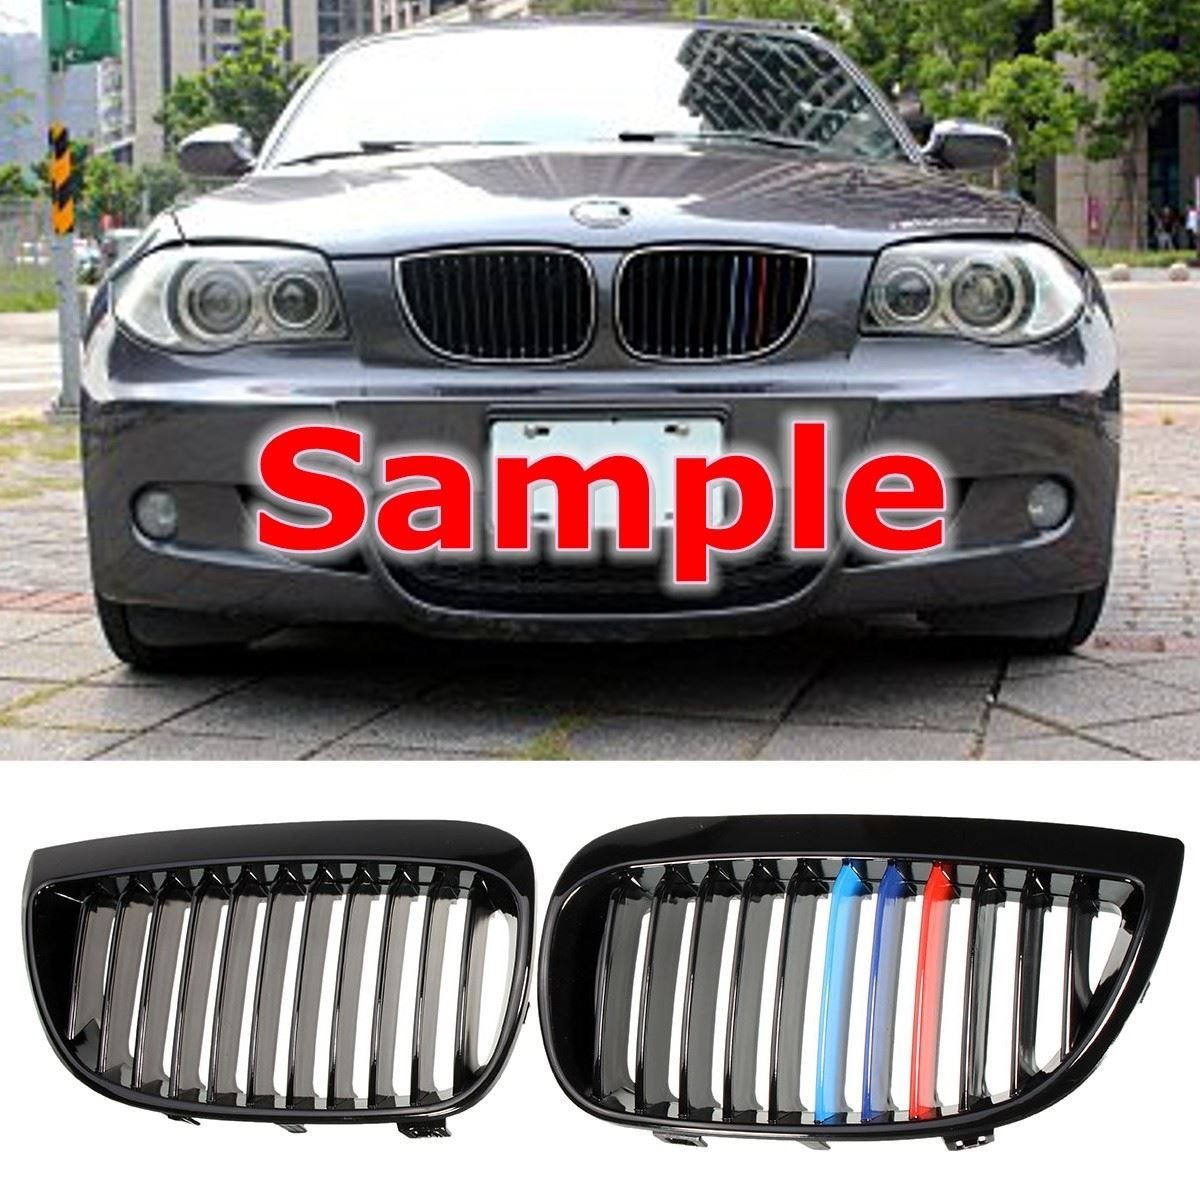 1 Pair Shiny Black M Style Sport Kidney Car Grill Grille For BMW E87 E81 1Series 2004-2007